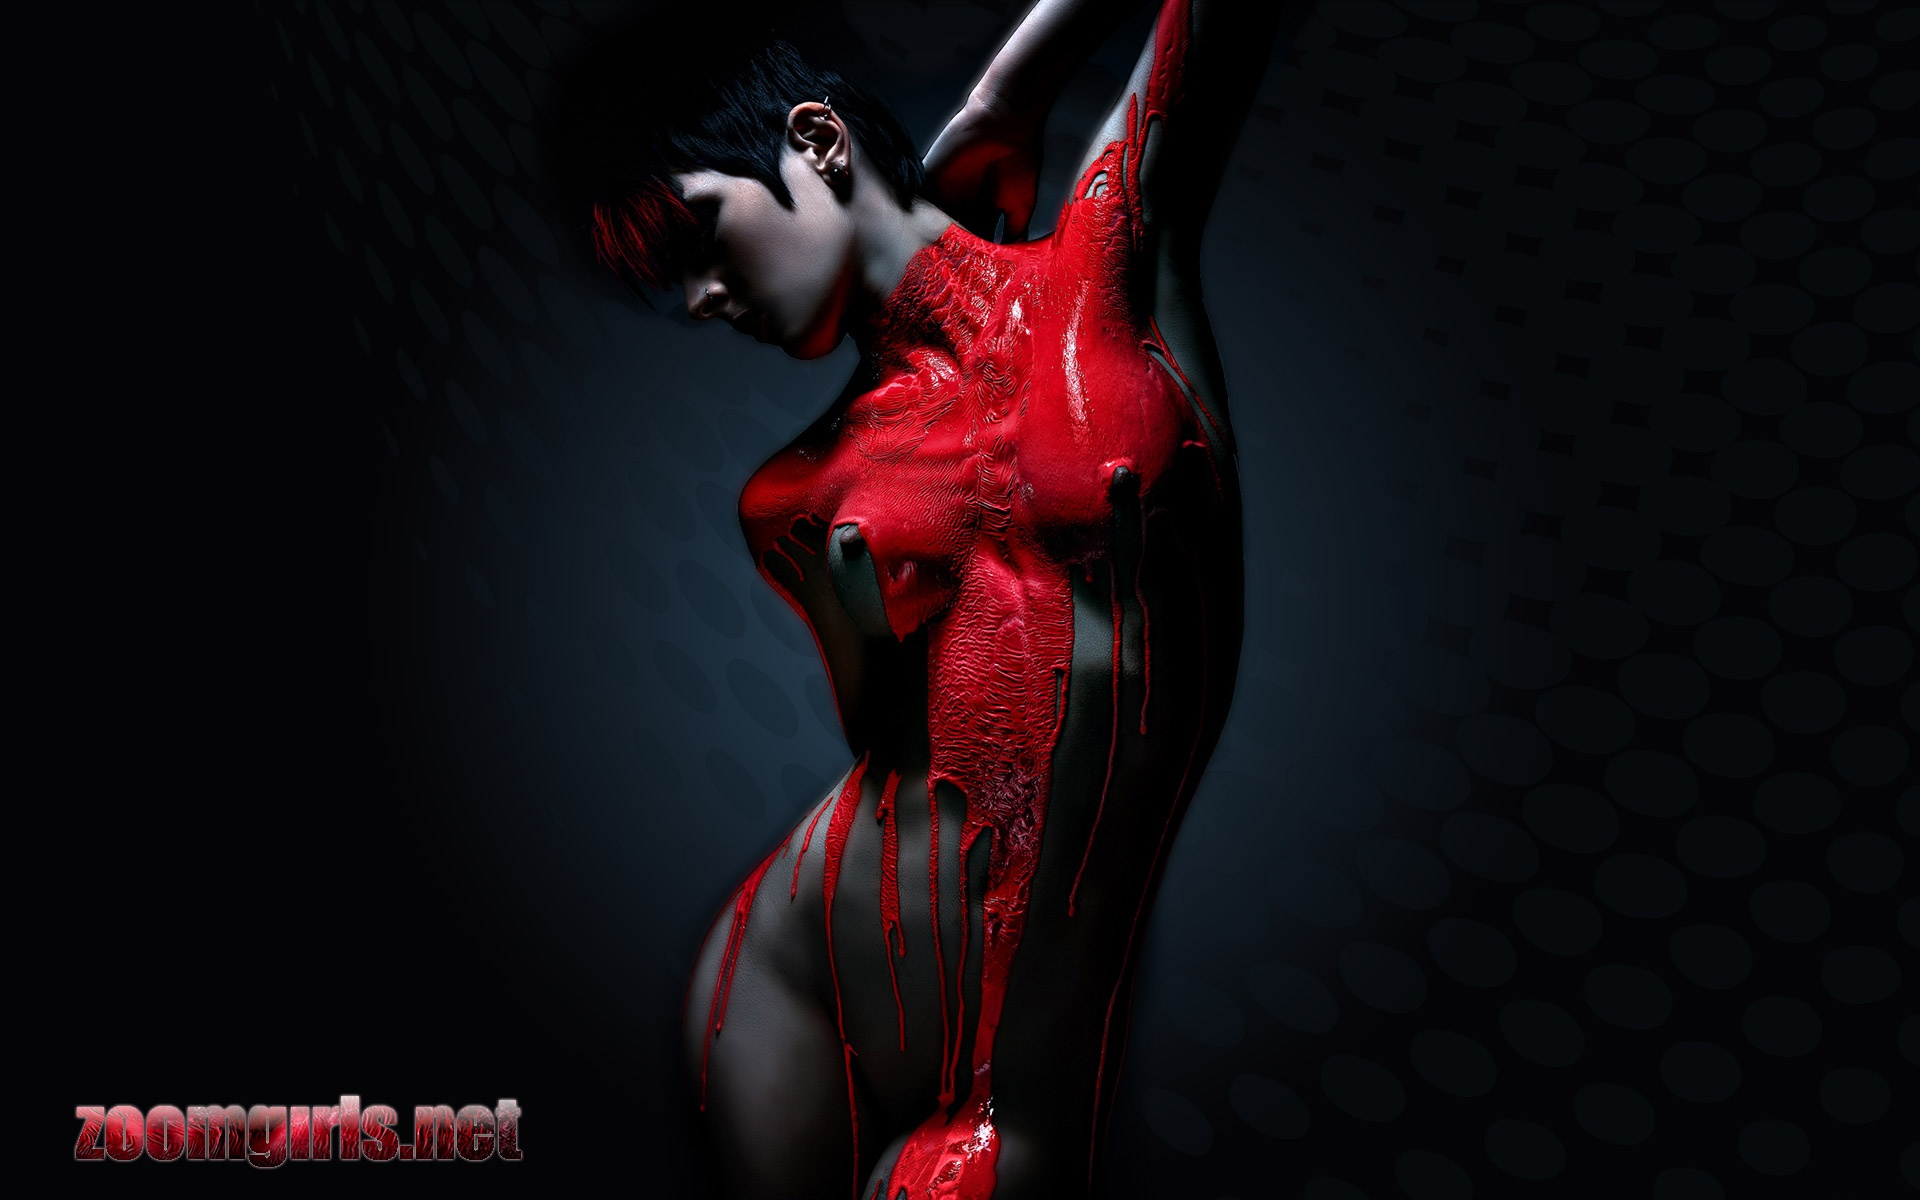 Hot blood sexy wallpaper erotica pic